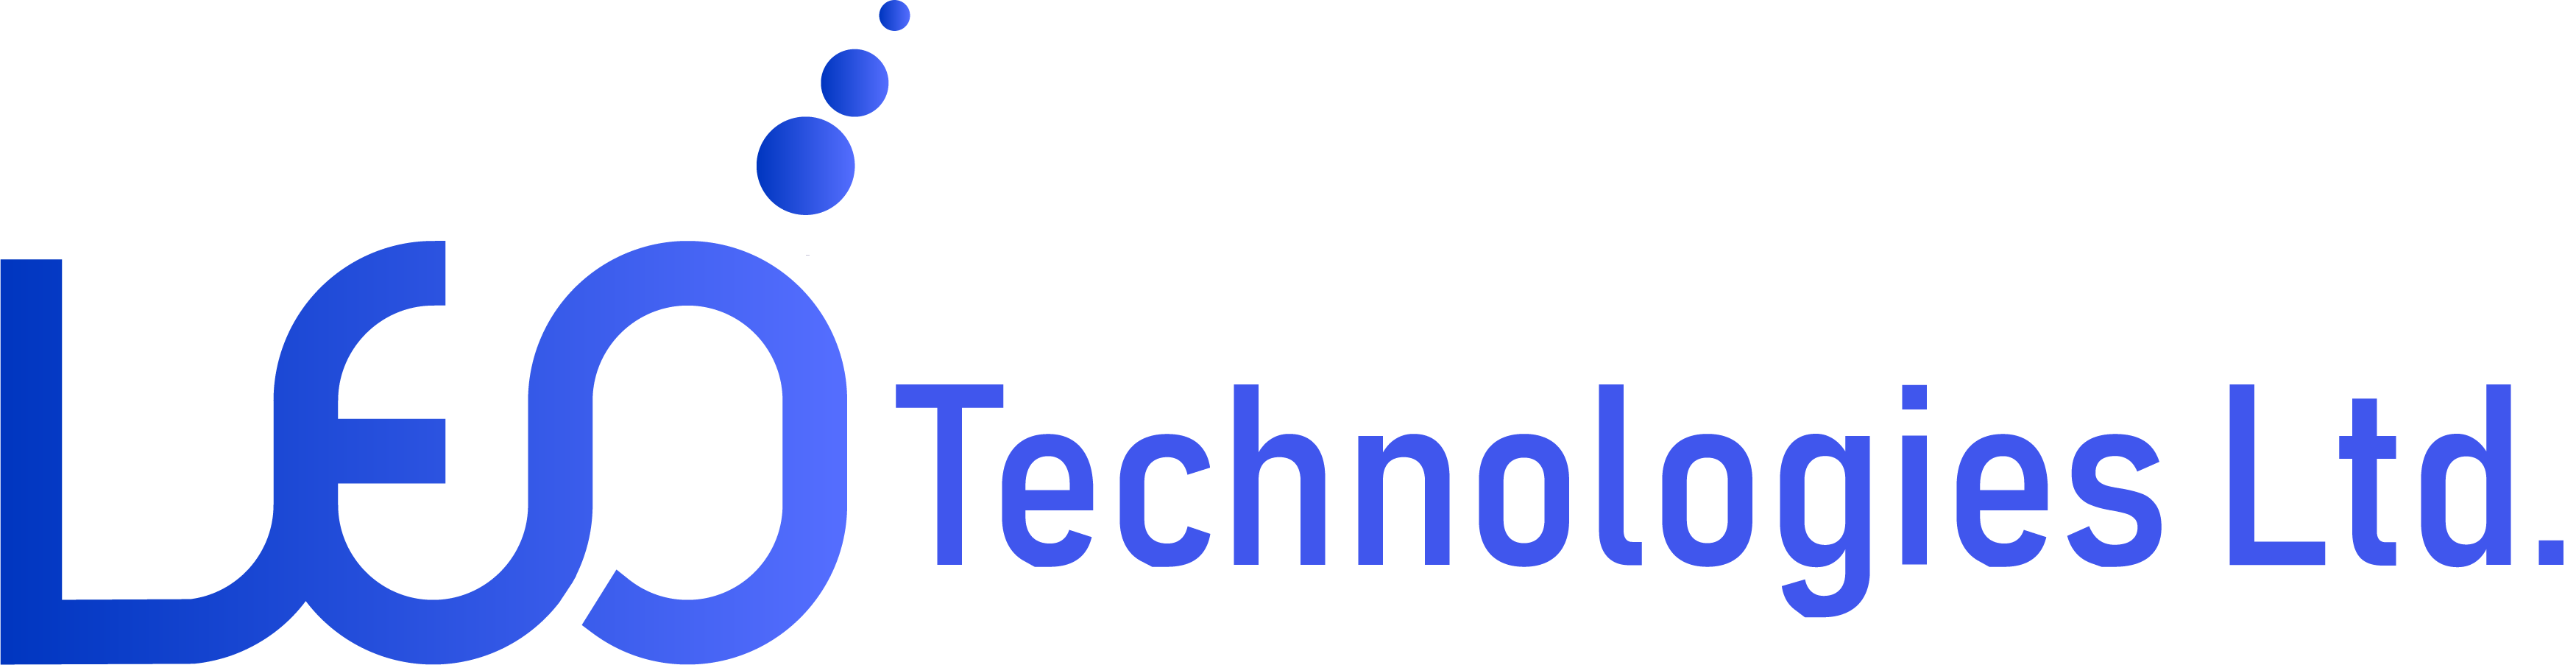 Leo Technologies Limited